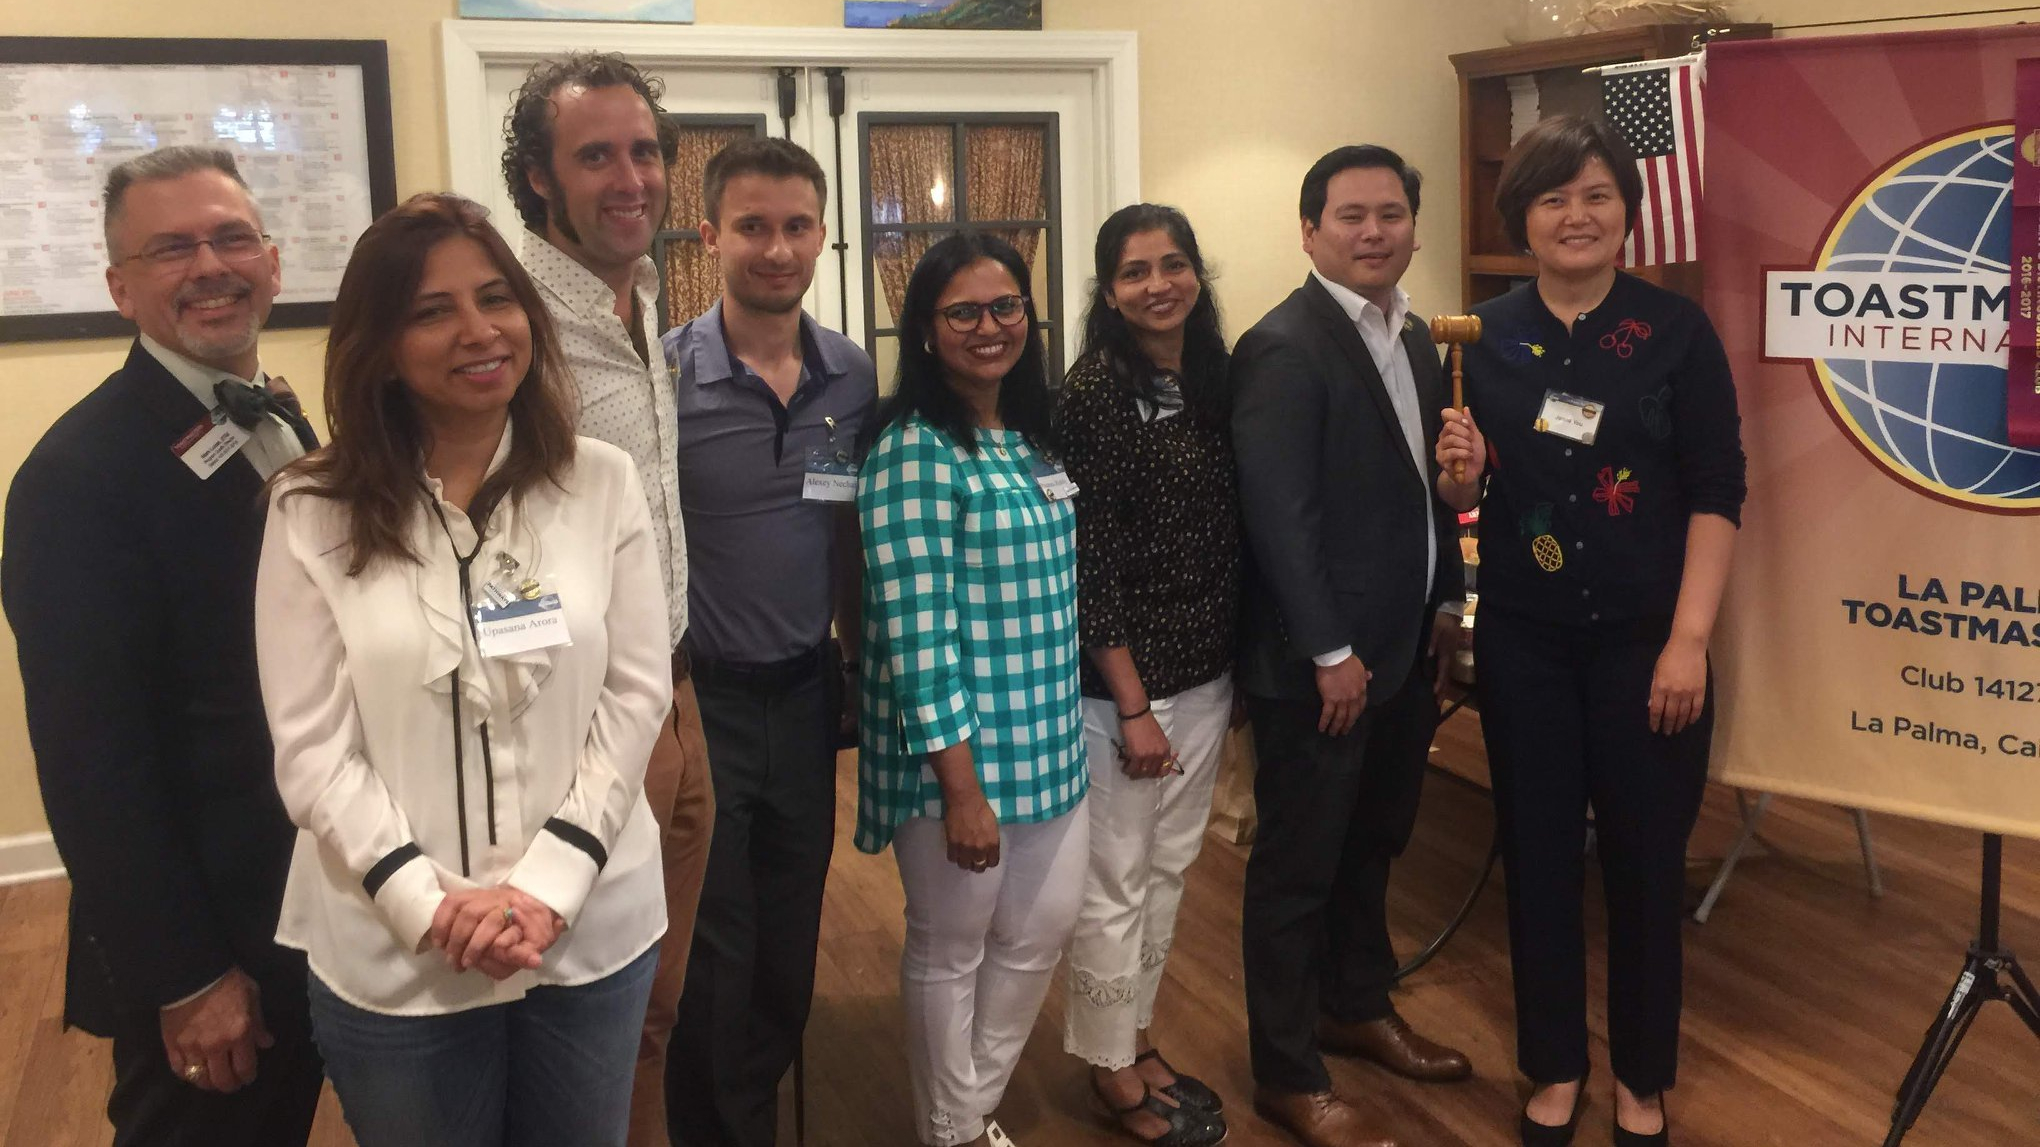 La Palma Toastmasters Officers for 2018-2019